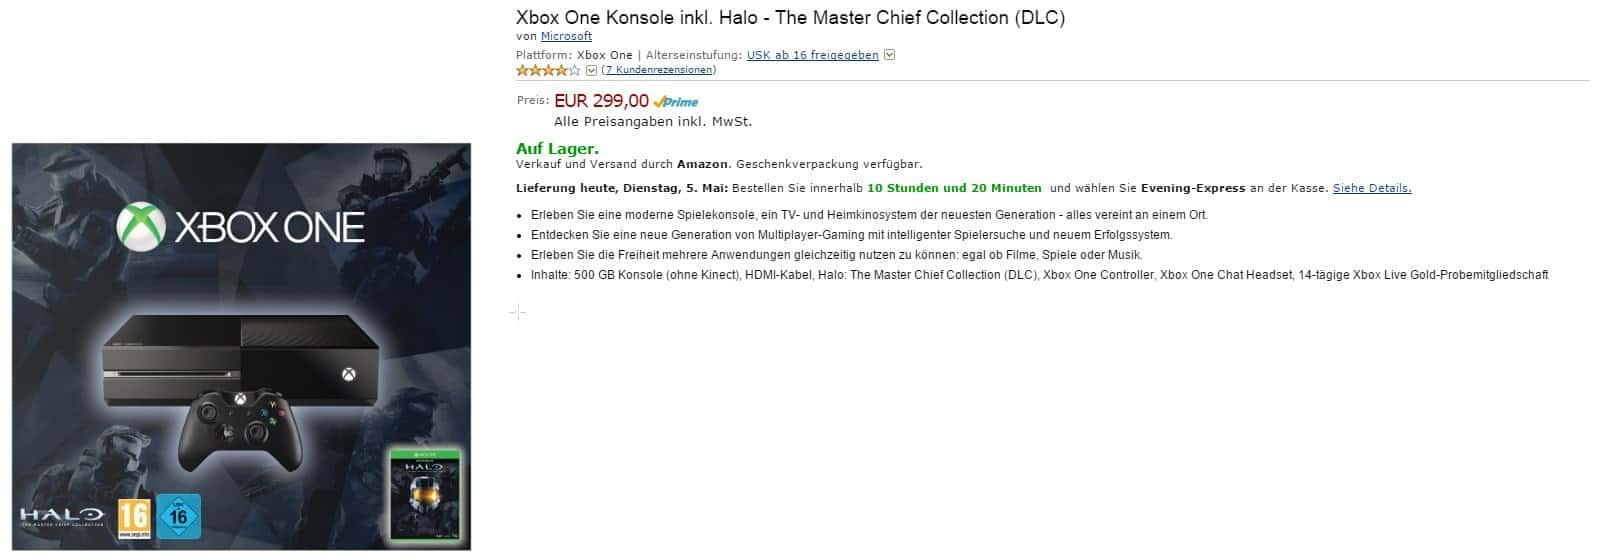 Amazon - Xbox One Konsole - Headset - Halo The Master Chief Collection